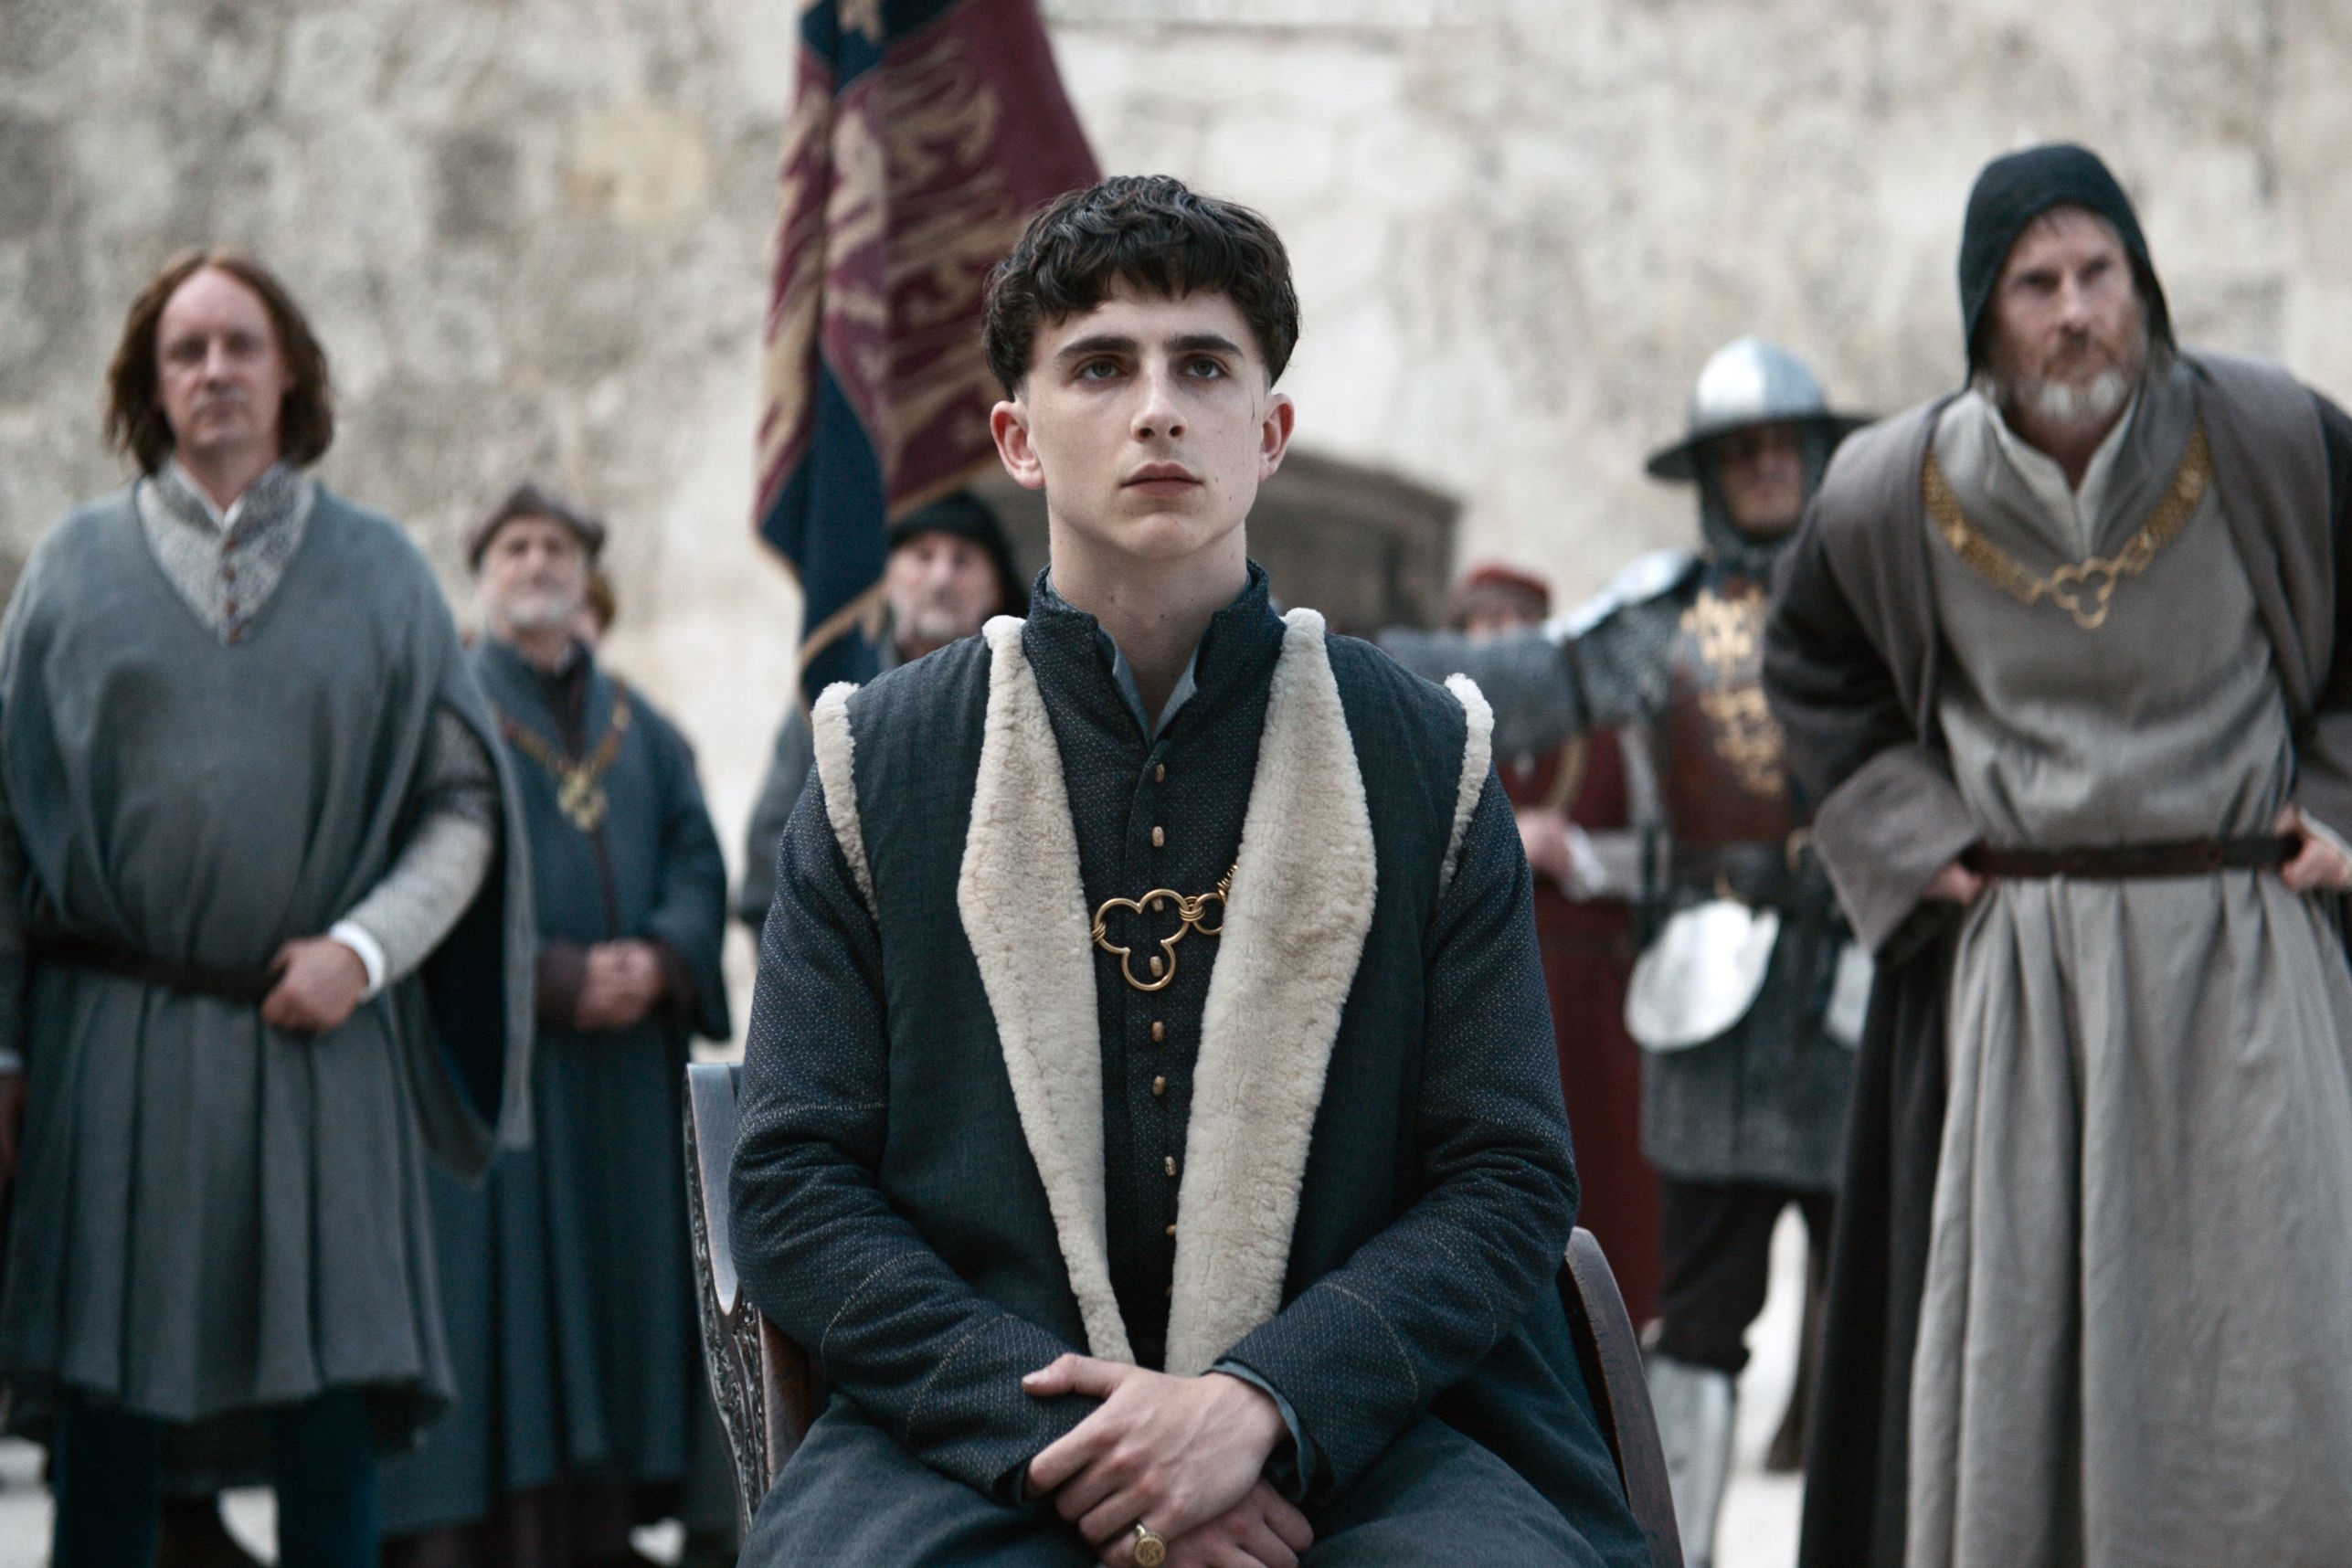 Netflix's The King treads familiar historical waters, except when a very French Robert Pattinson prances on screen